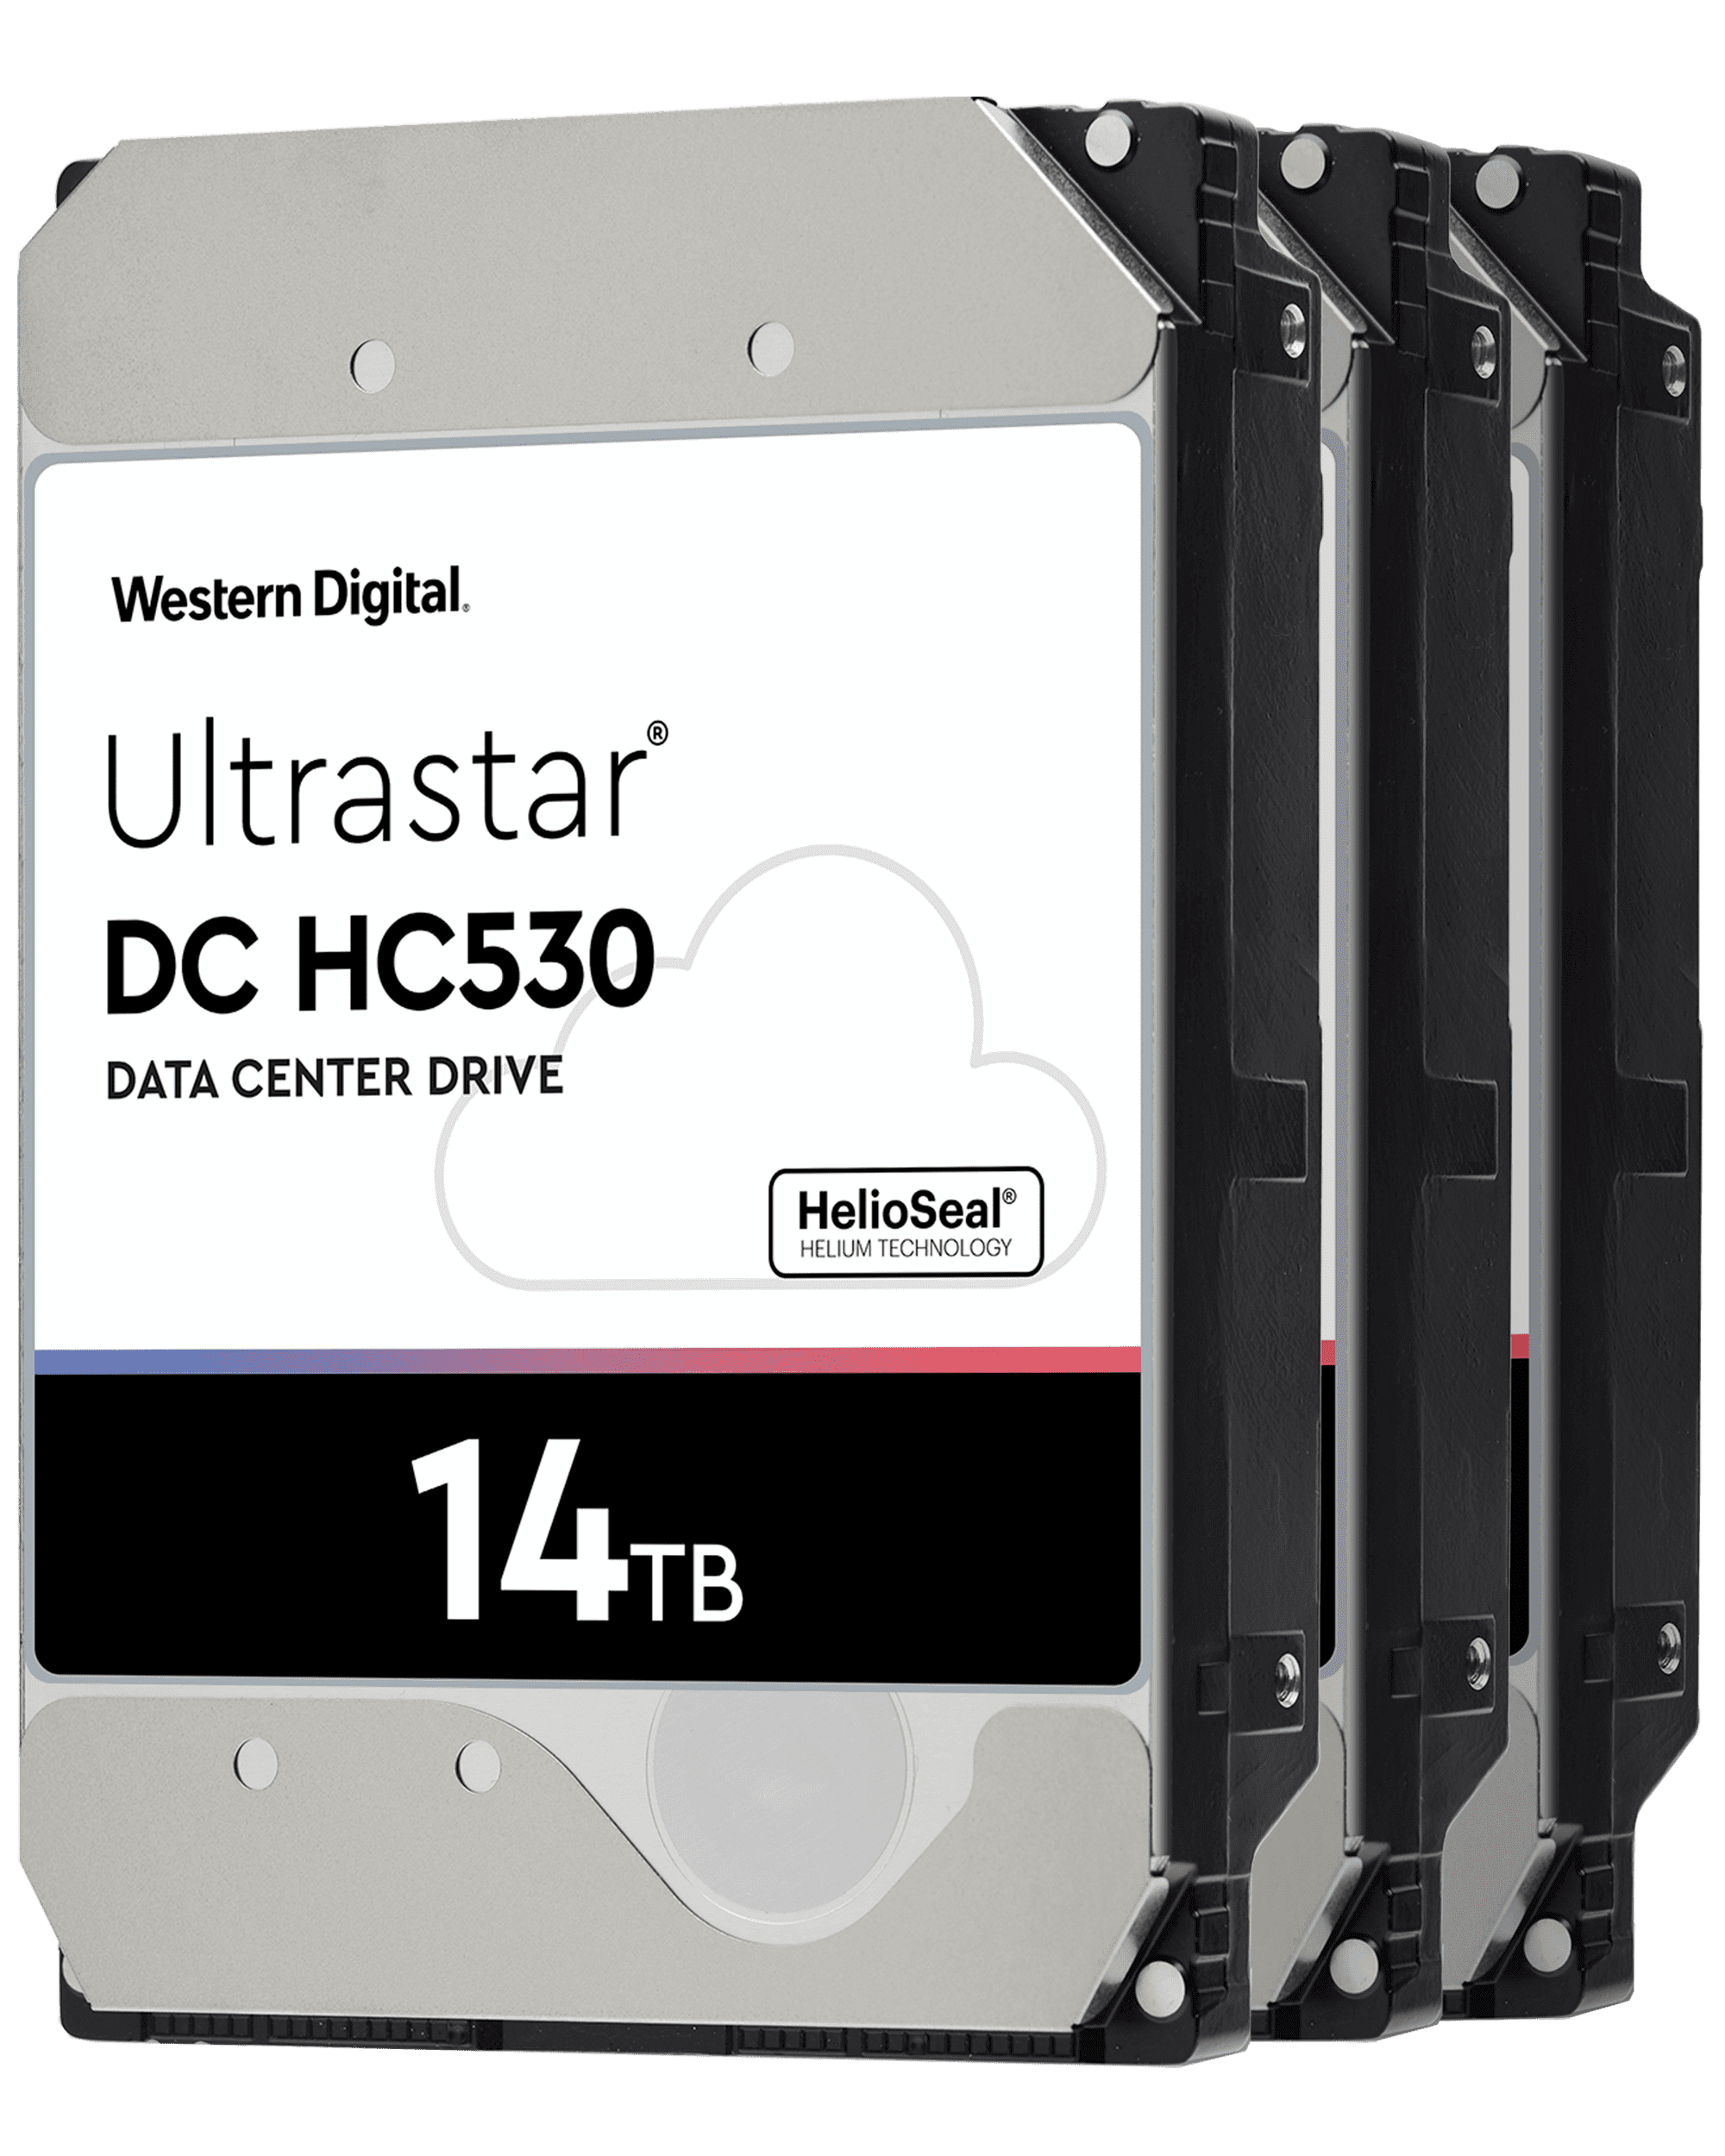 Ultrastar Dc Hc500 Series Hdd Sas Sata Controller With Encryption Download